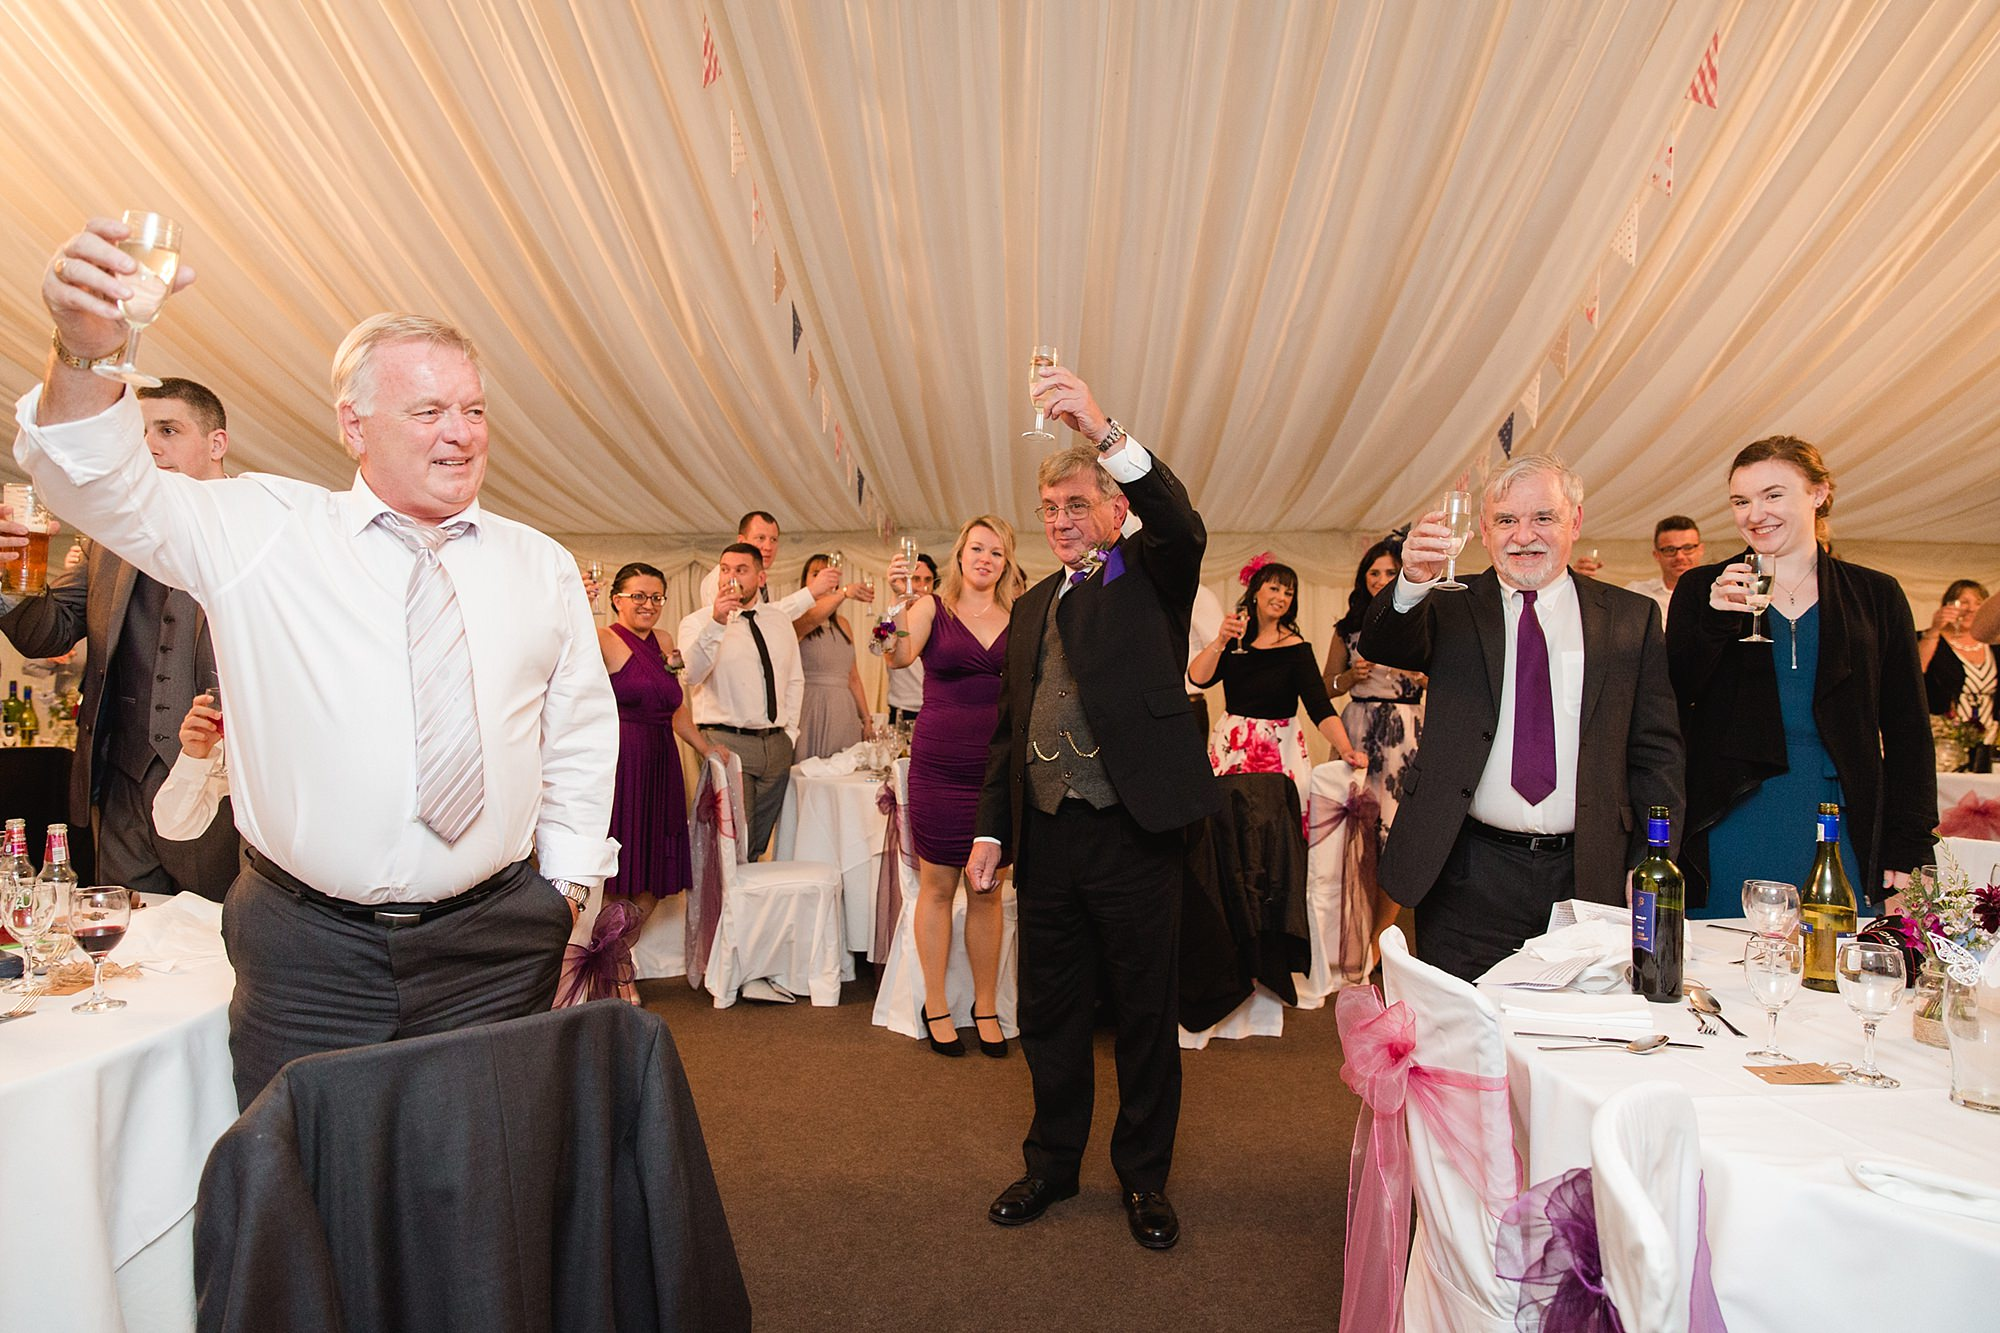 A fun wedding at last usaf father of groom toast